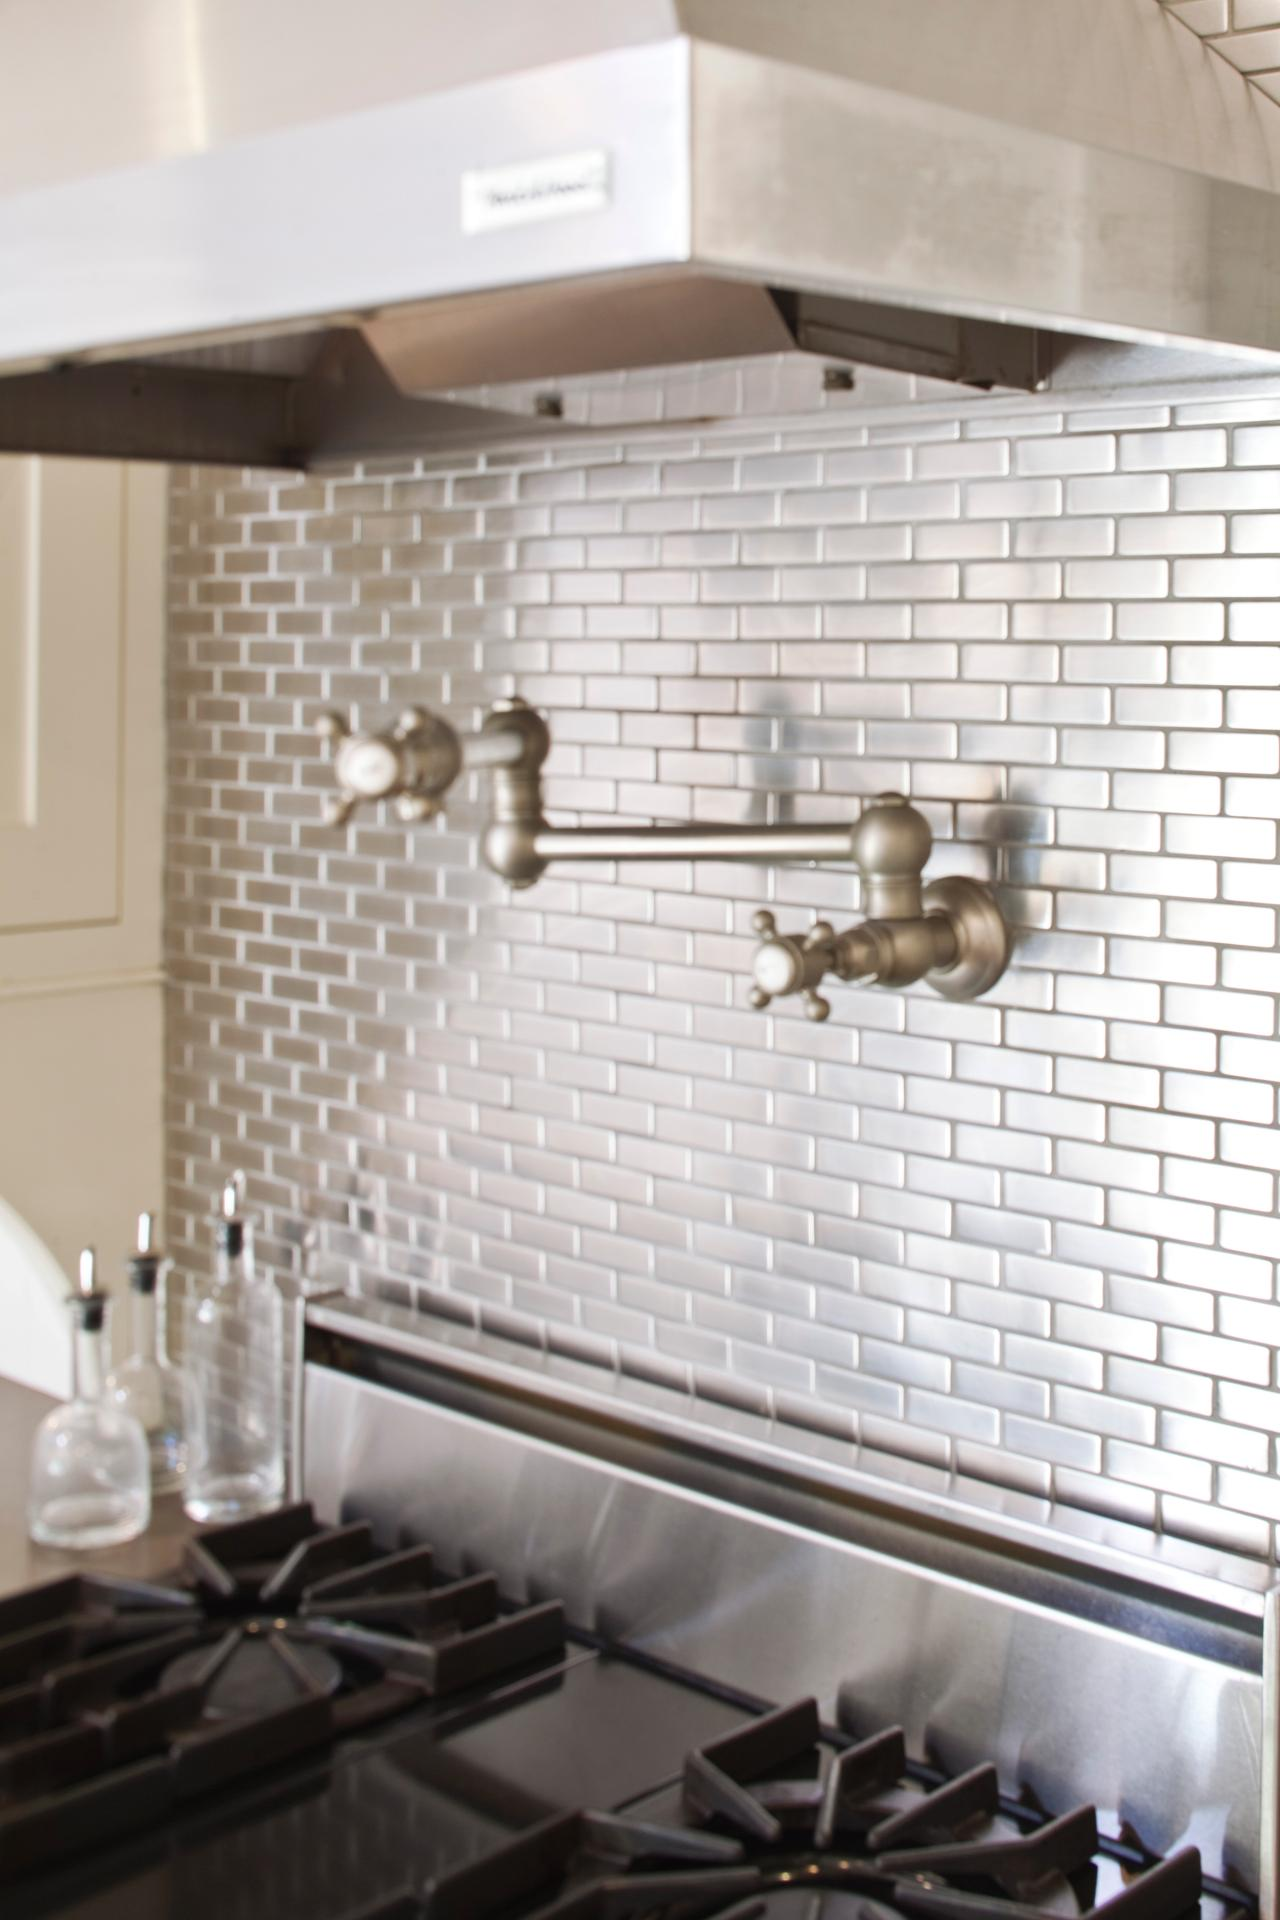 Make a splash with these backsplash designs bkc kitchen and bath Backsplash wall tile